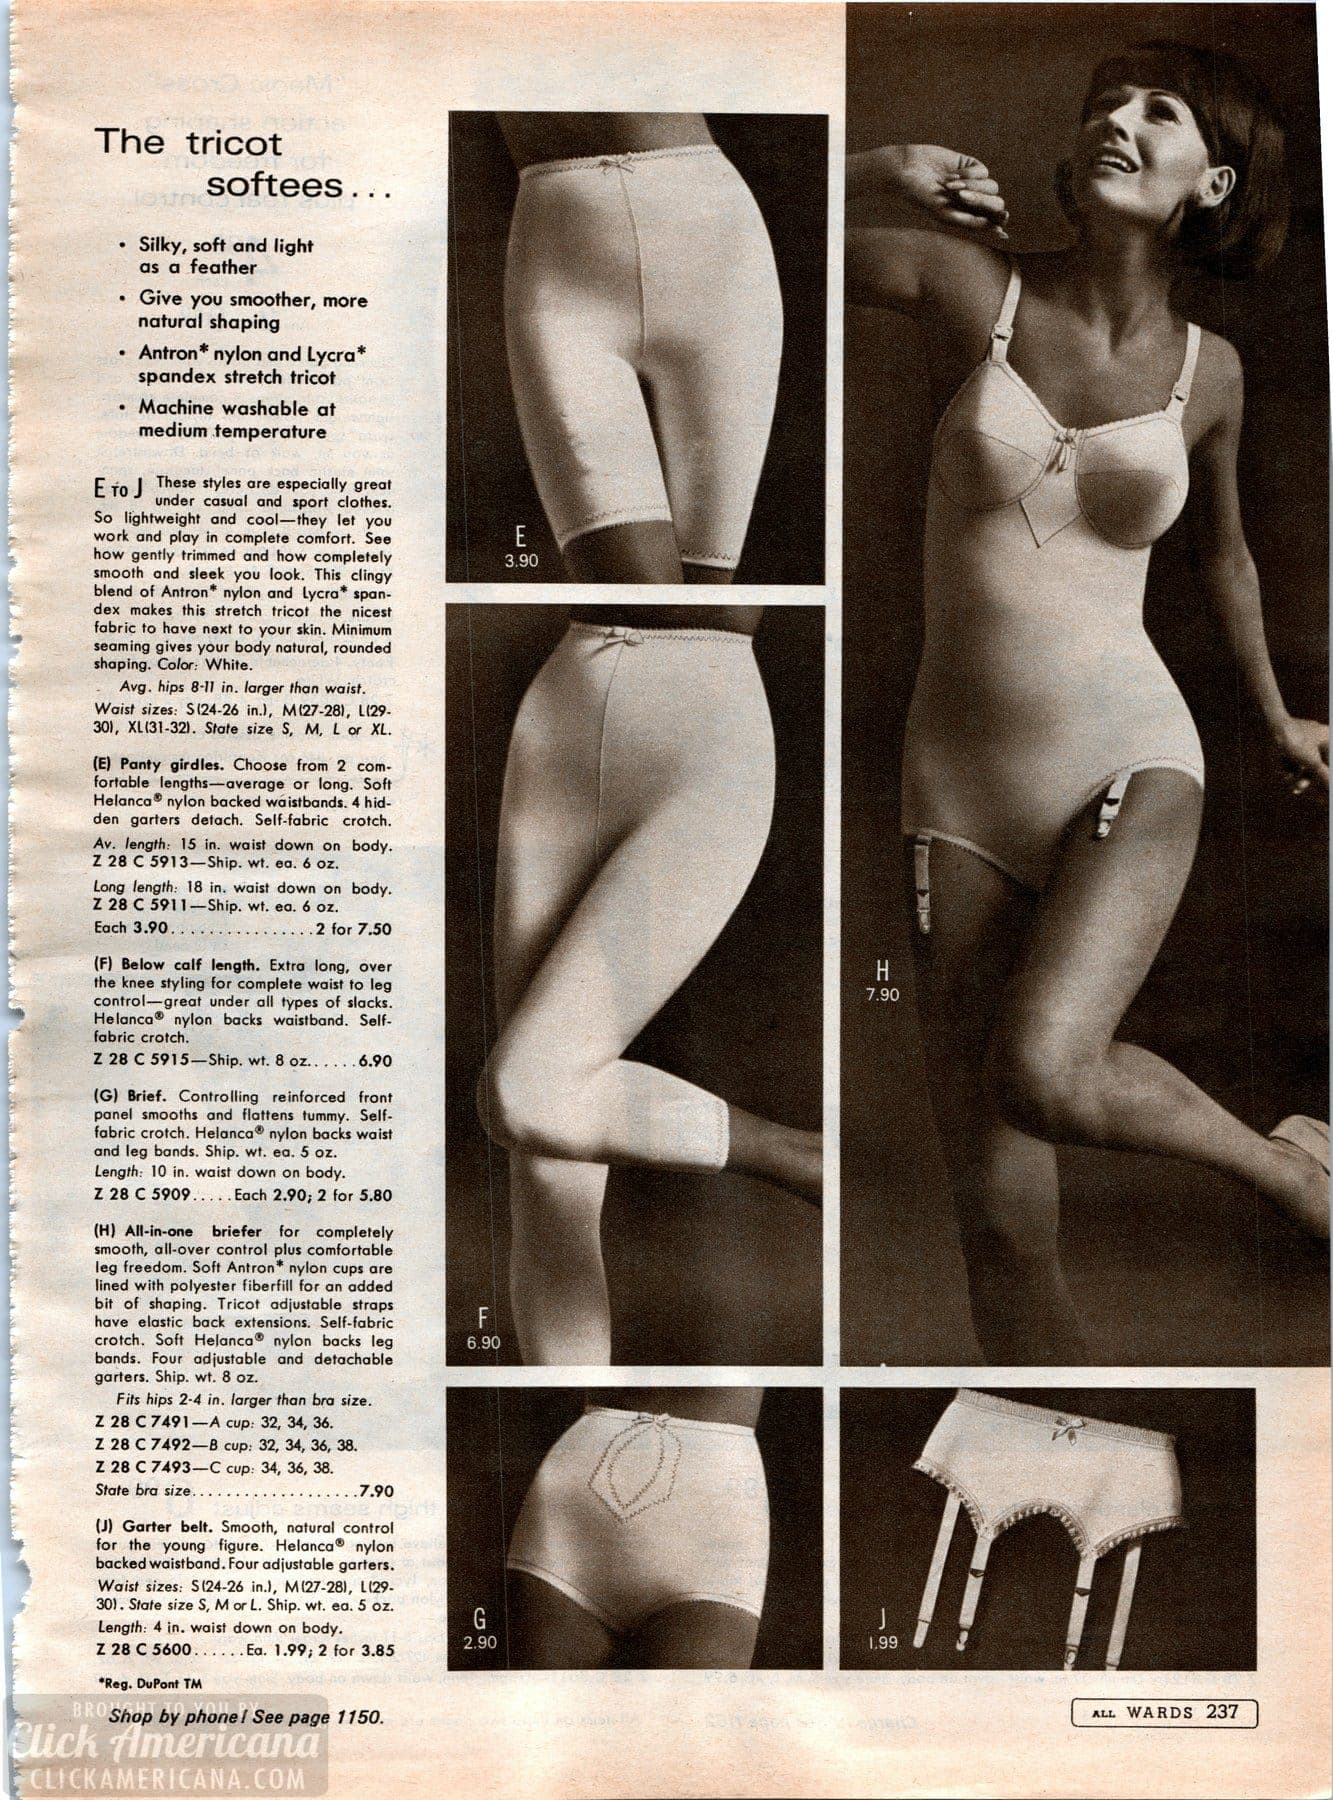 Vintage '60s lingerie - foundation garments and shapers